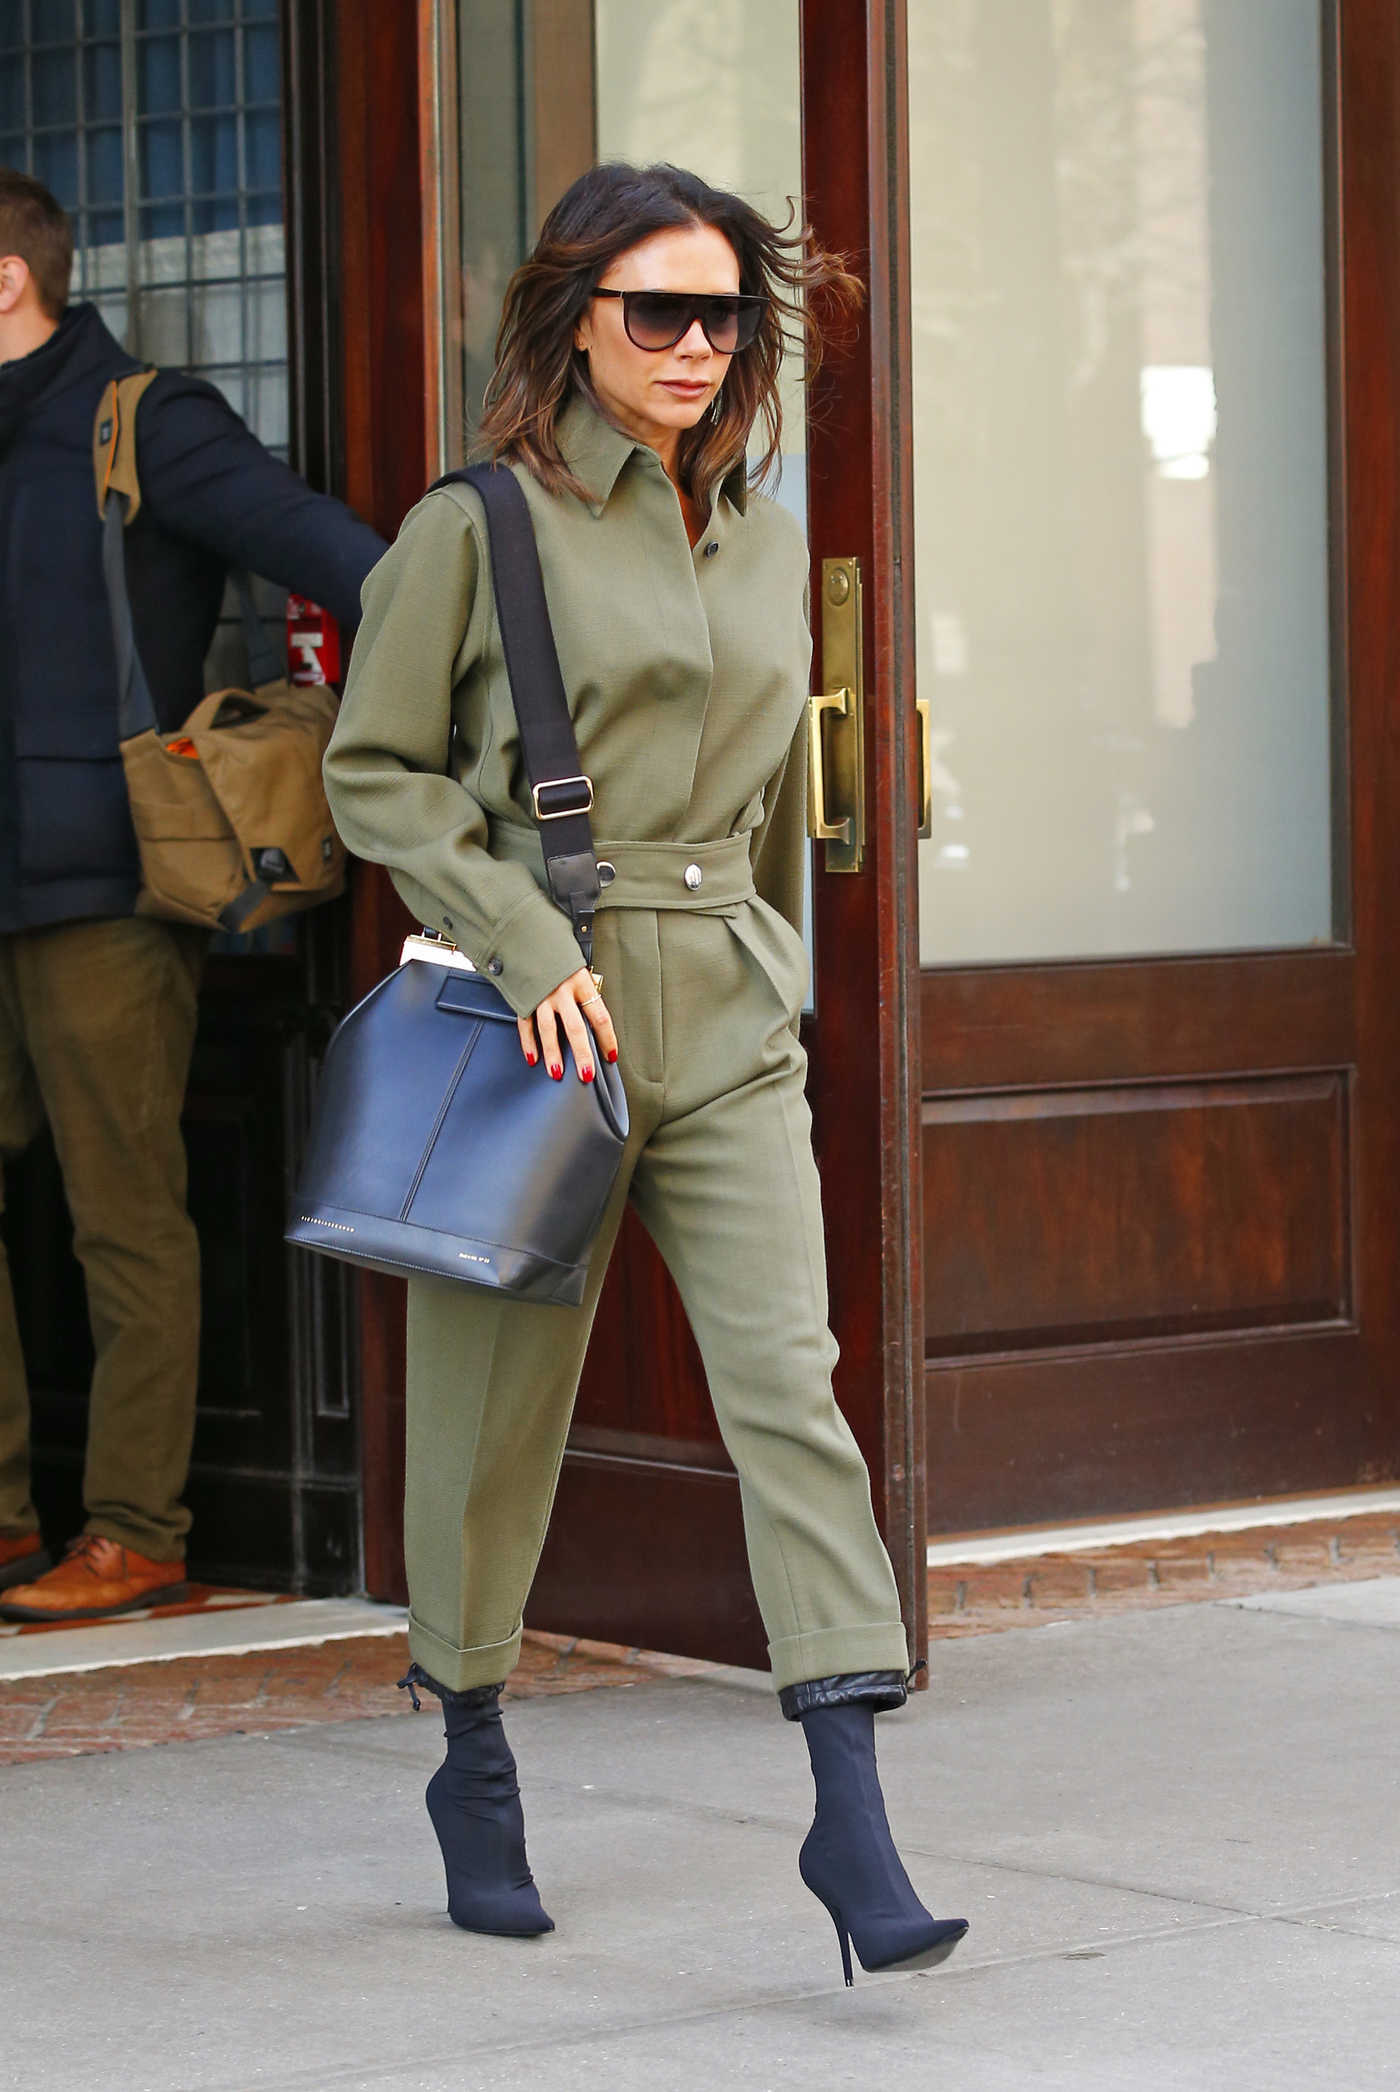 Victoria Beckham Heads to a Meeting in New York City 11/27/2018